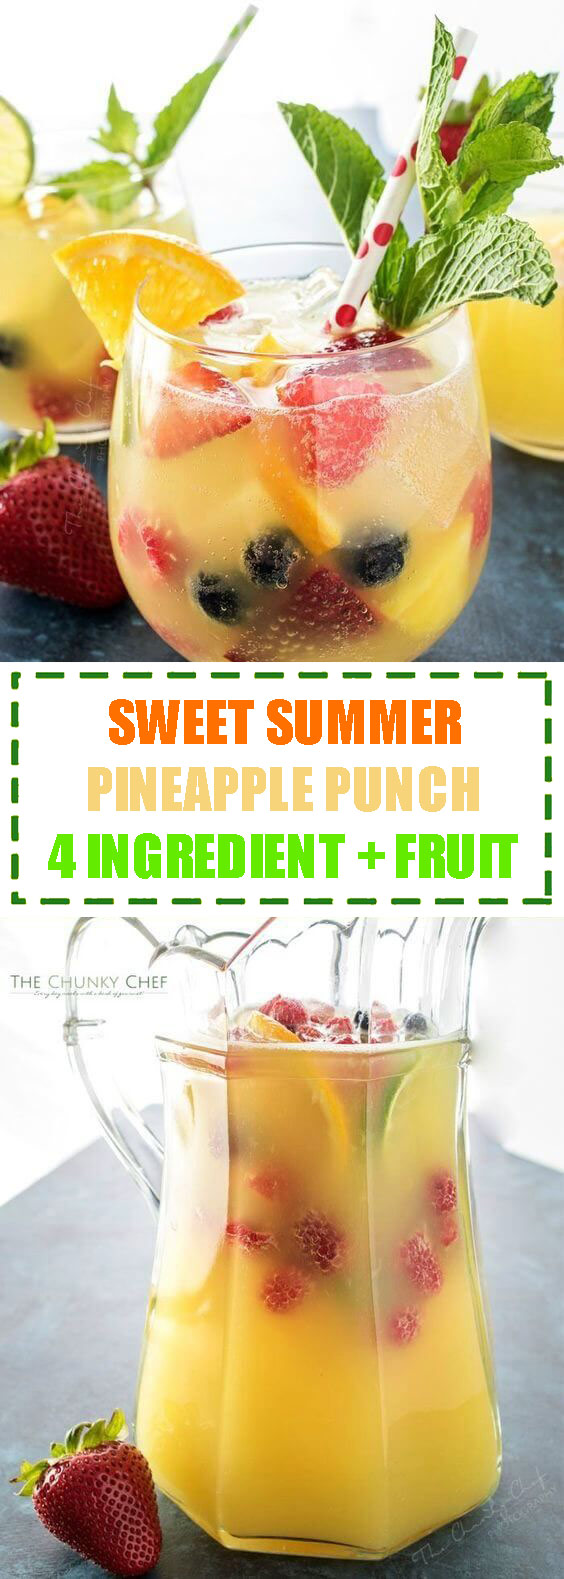 Sweet Summer Pineapple Punch